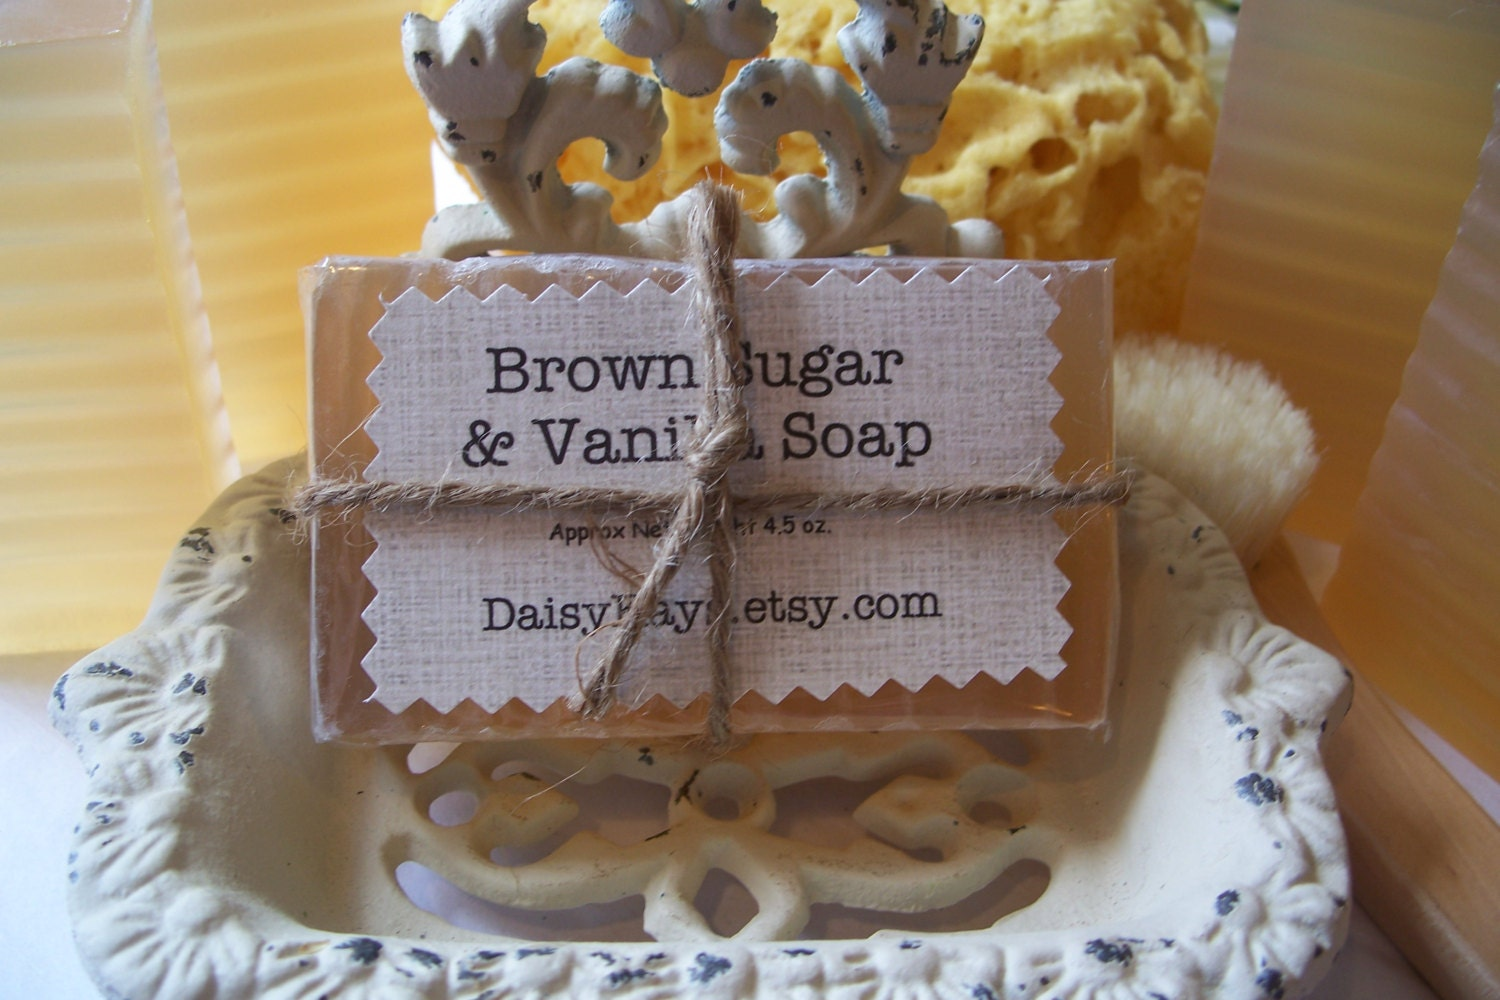 Brown Sugar and Vanilla Soap ~ Fall, Autumn, Holidays, Christmas Gift, Favors, Parties, Home, Decor, Bath, Birthday, ACOFT,  OFG team, WIB - DaisyKays